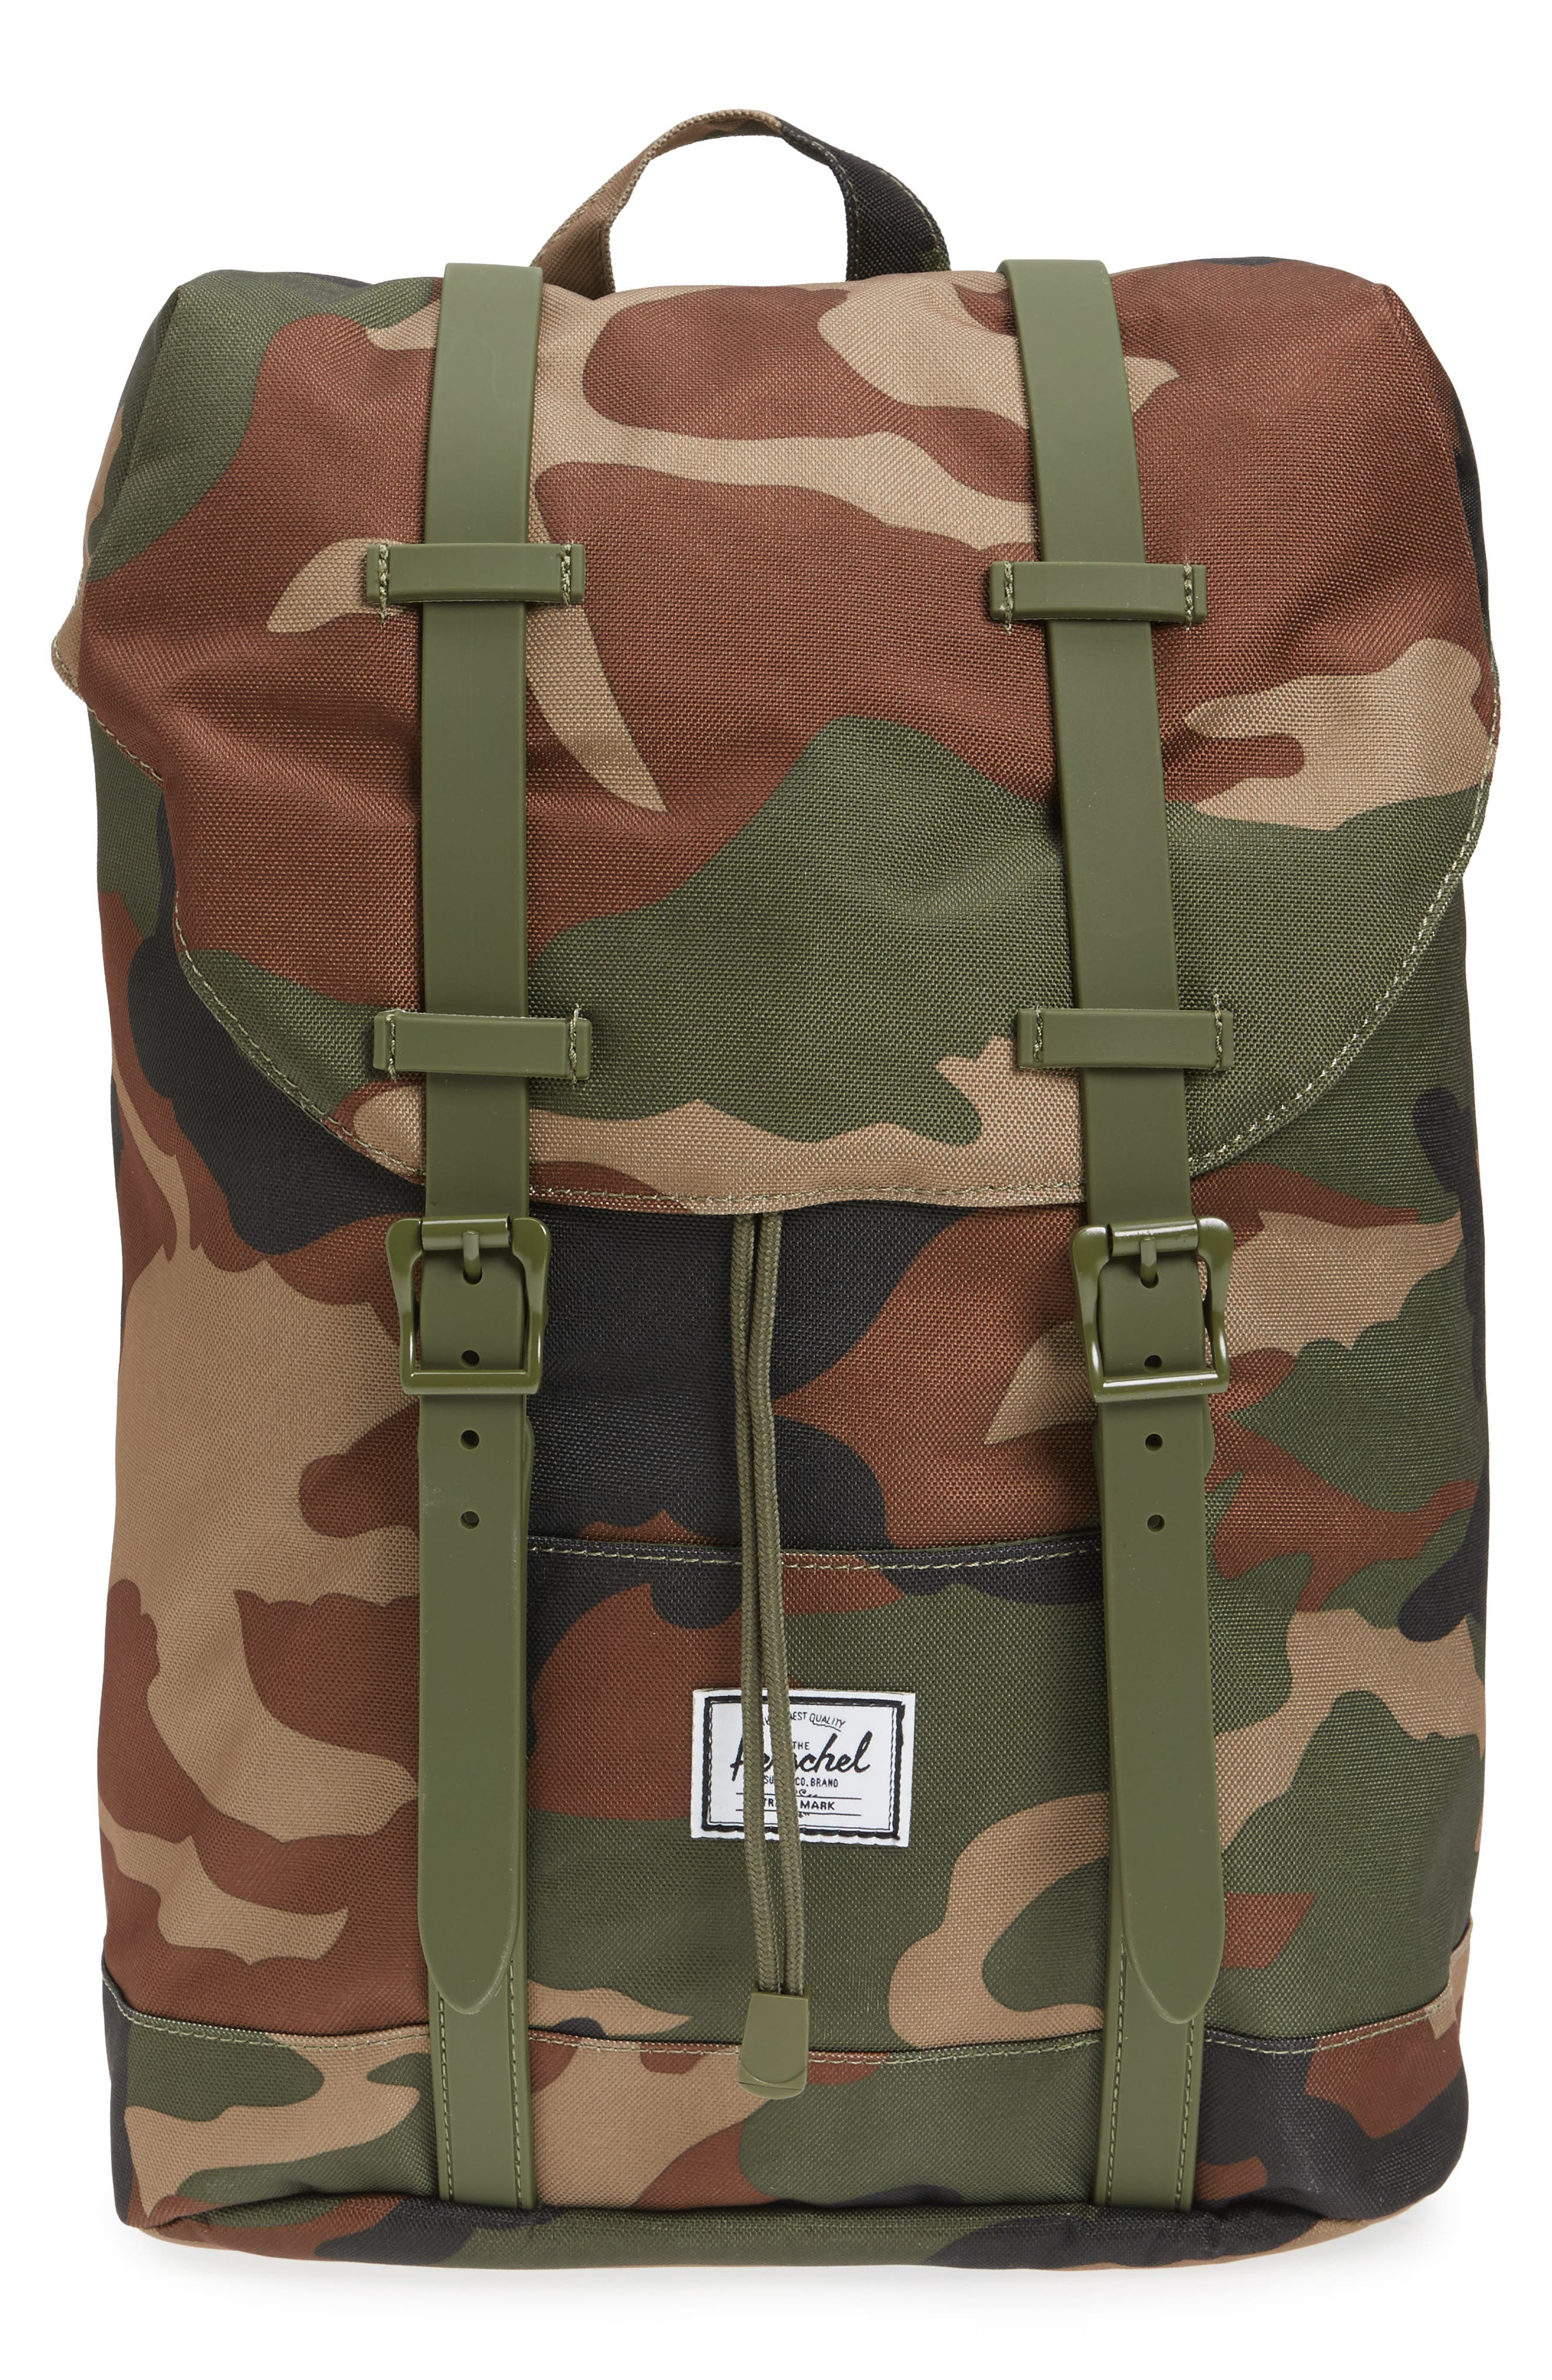 Retreat Camo Backpack,                         Main,                         color, Woodland Camo/ Army Rubber